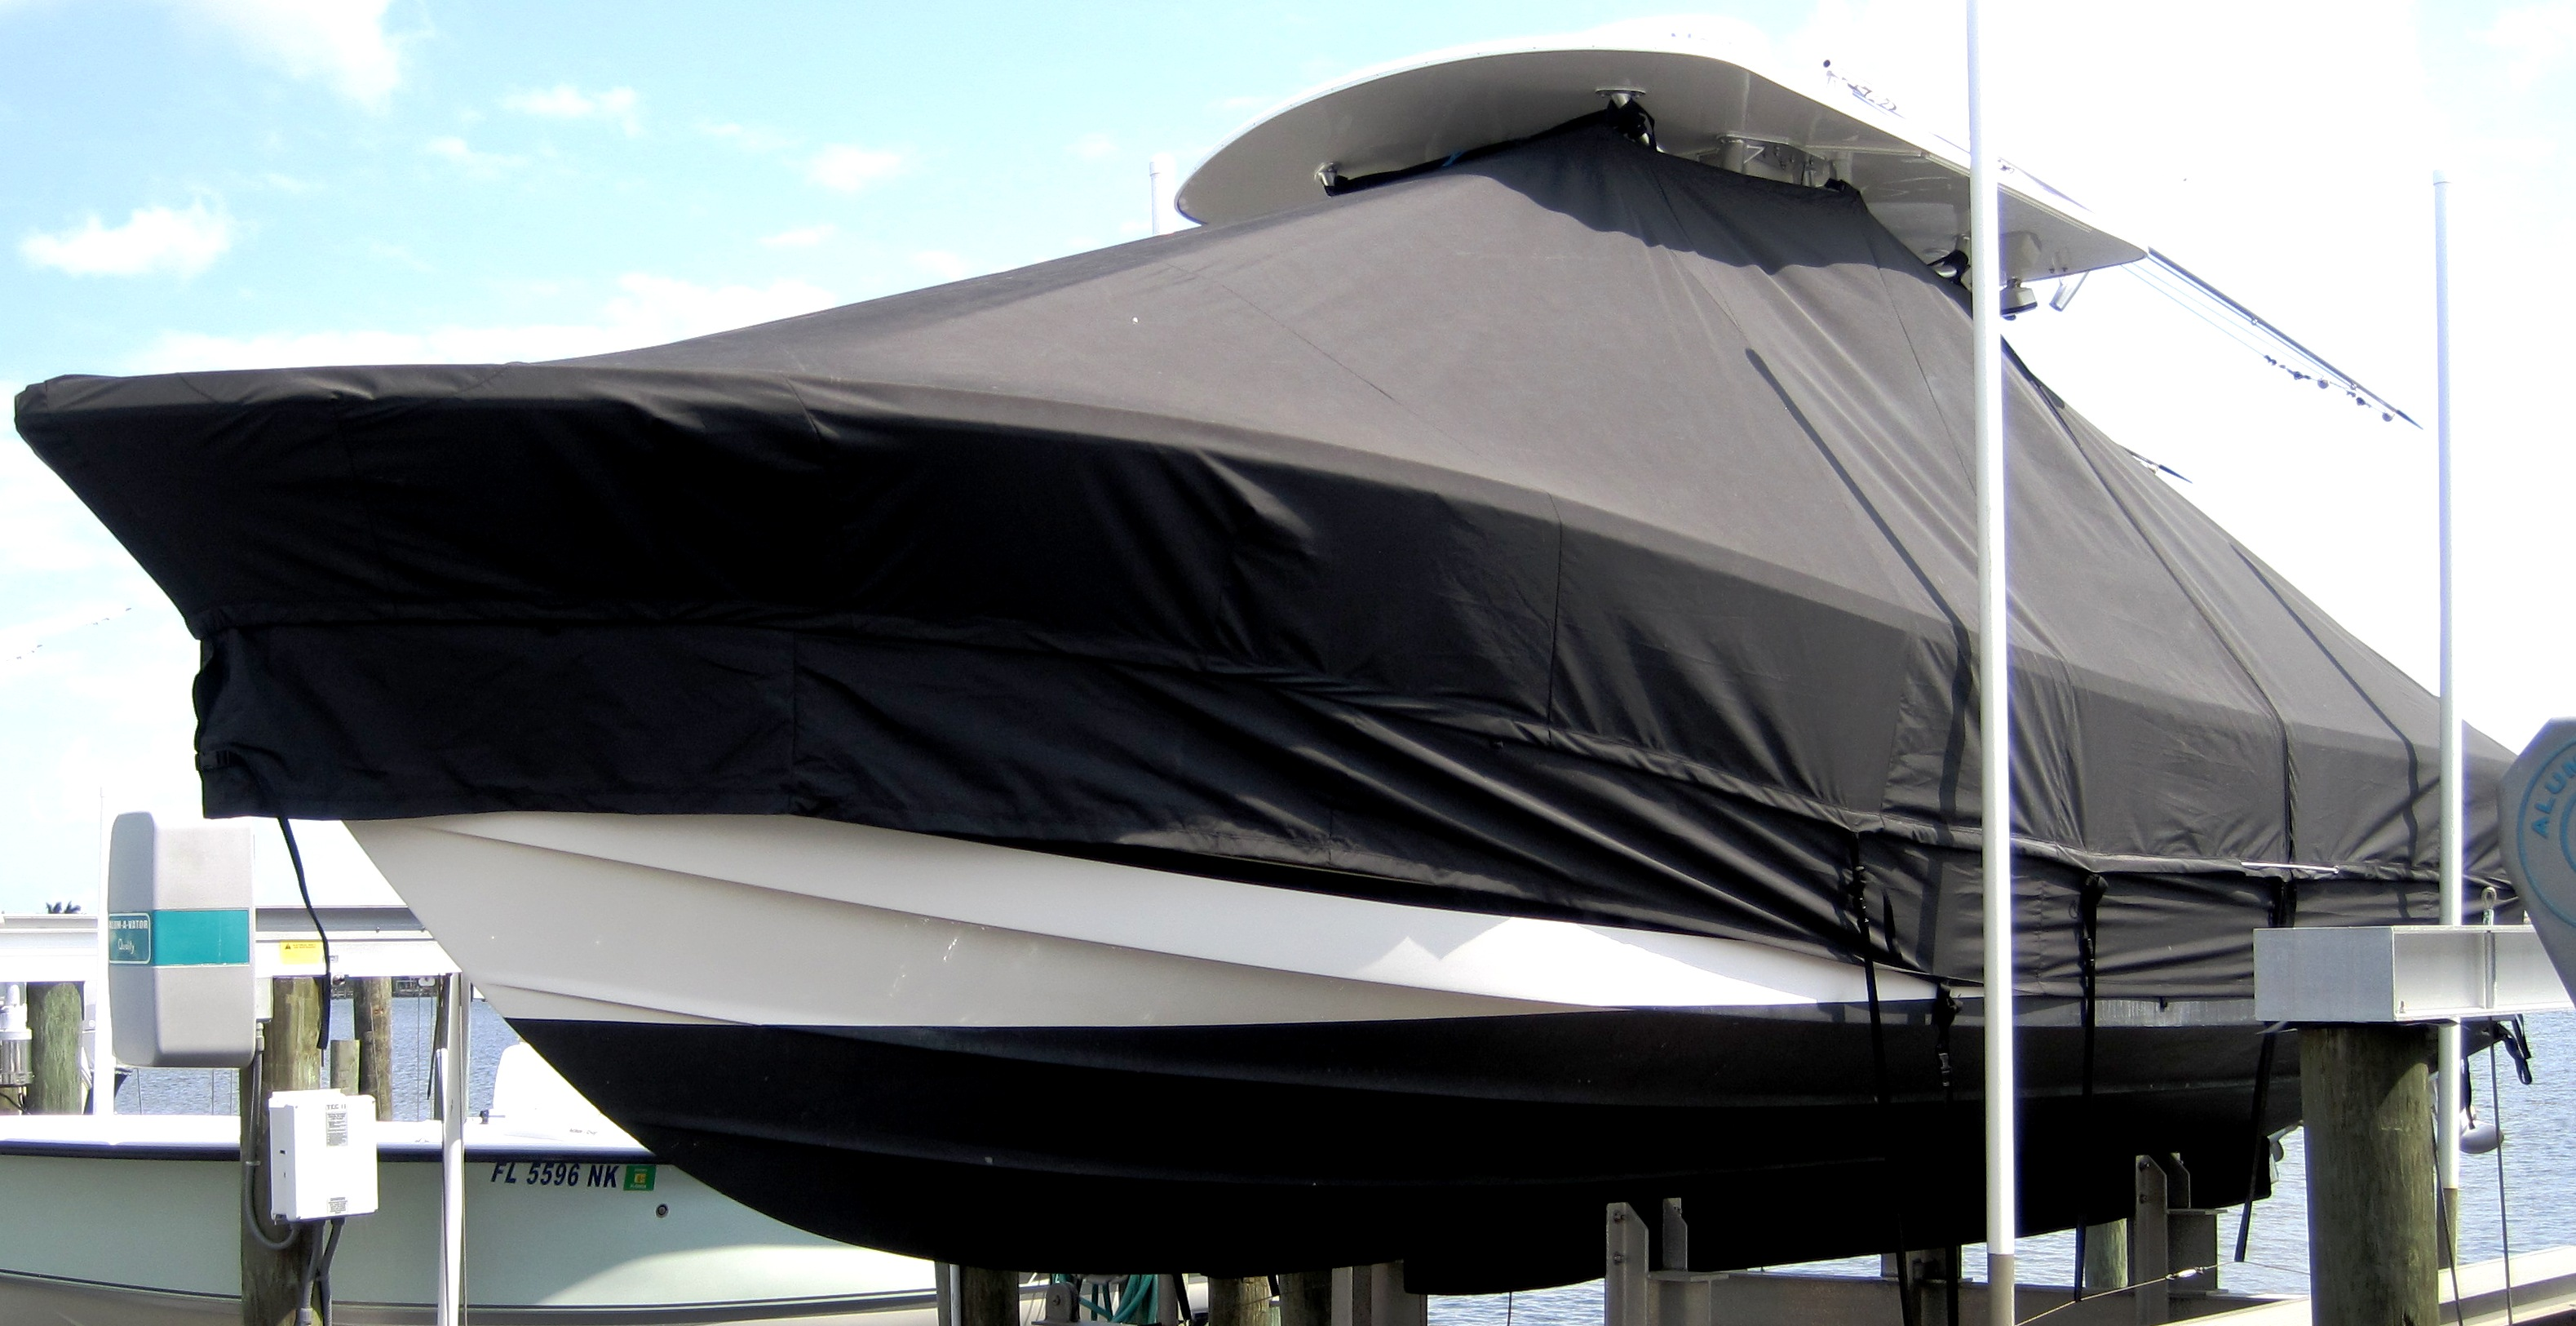 Regulator 26FS, 20xx, TTopCovers™ T-Top boat cover Extended Side Skirts, port front